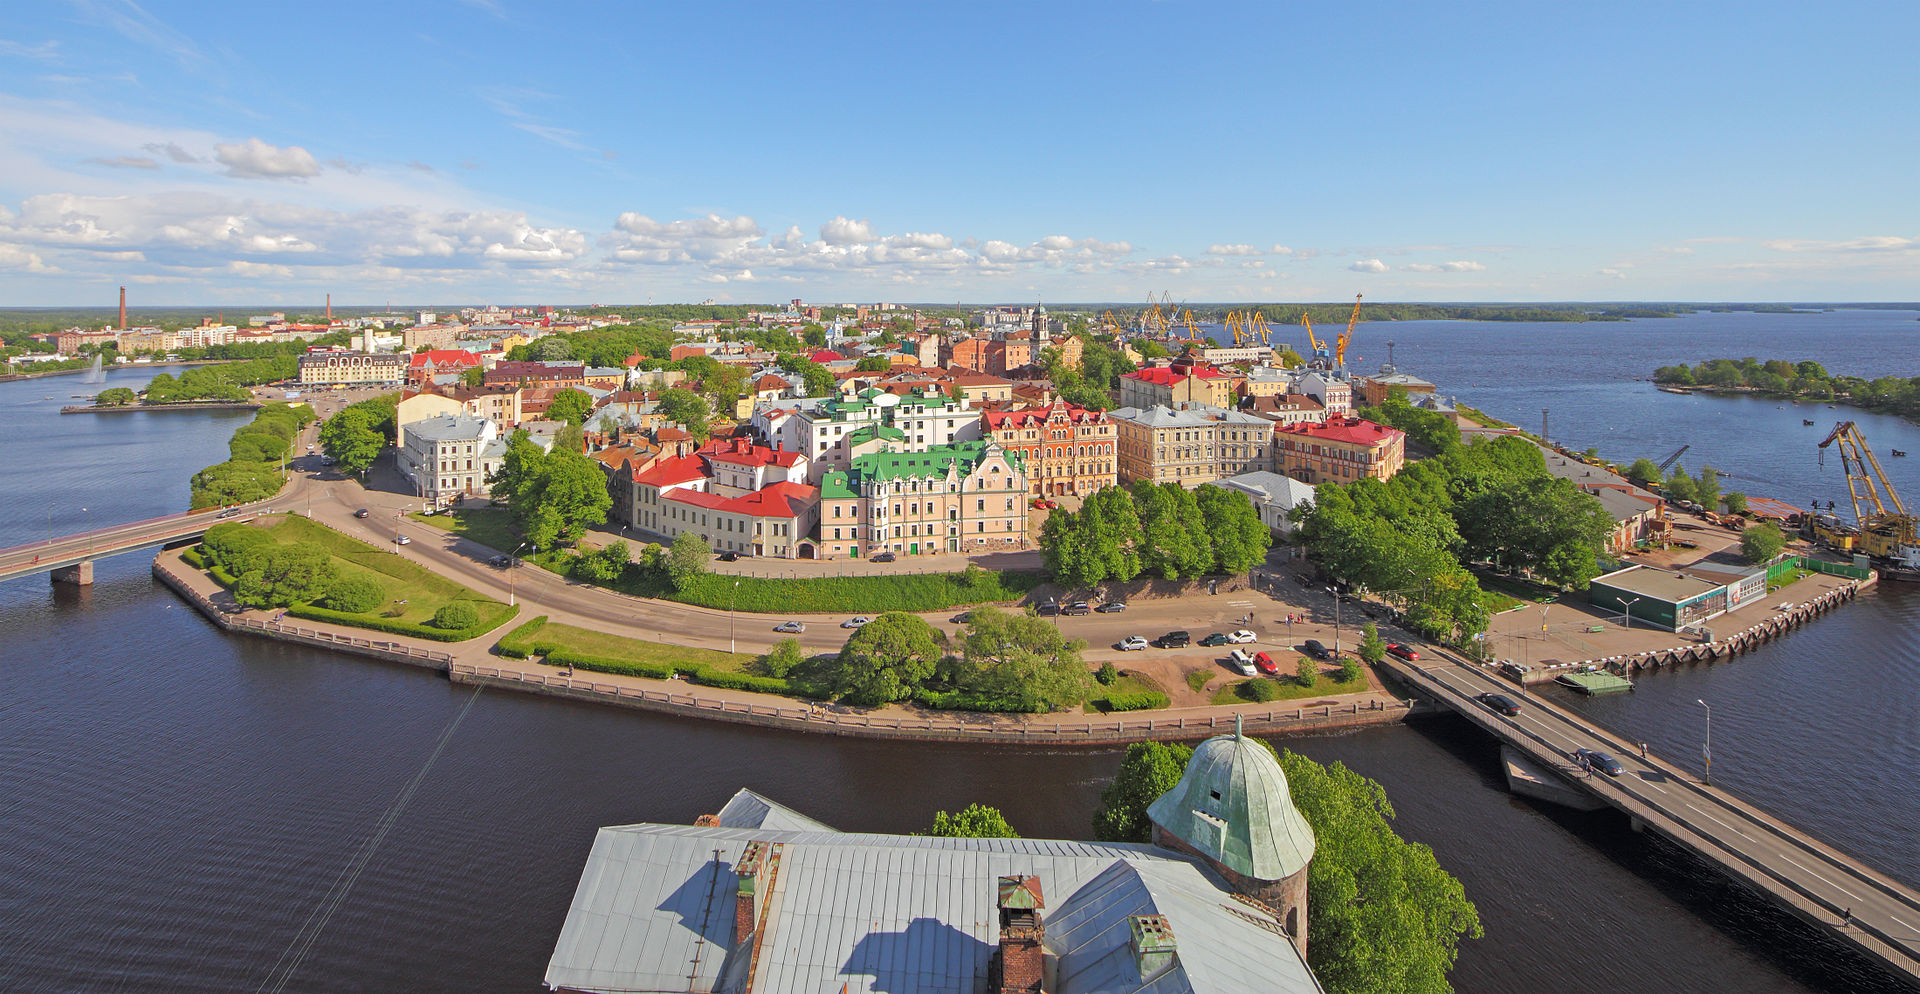 Vyborg_June2012_View_from_Olaf_Tower_06